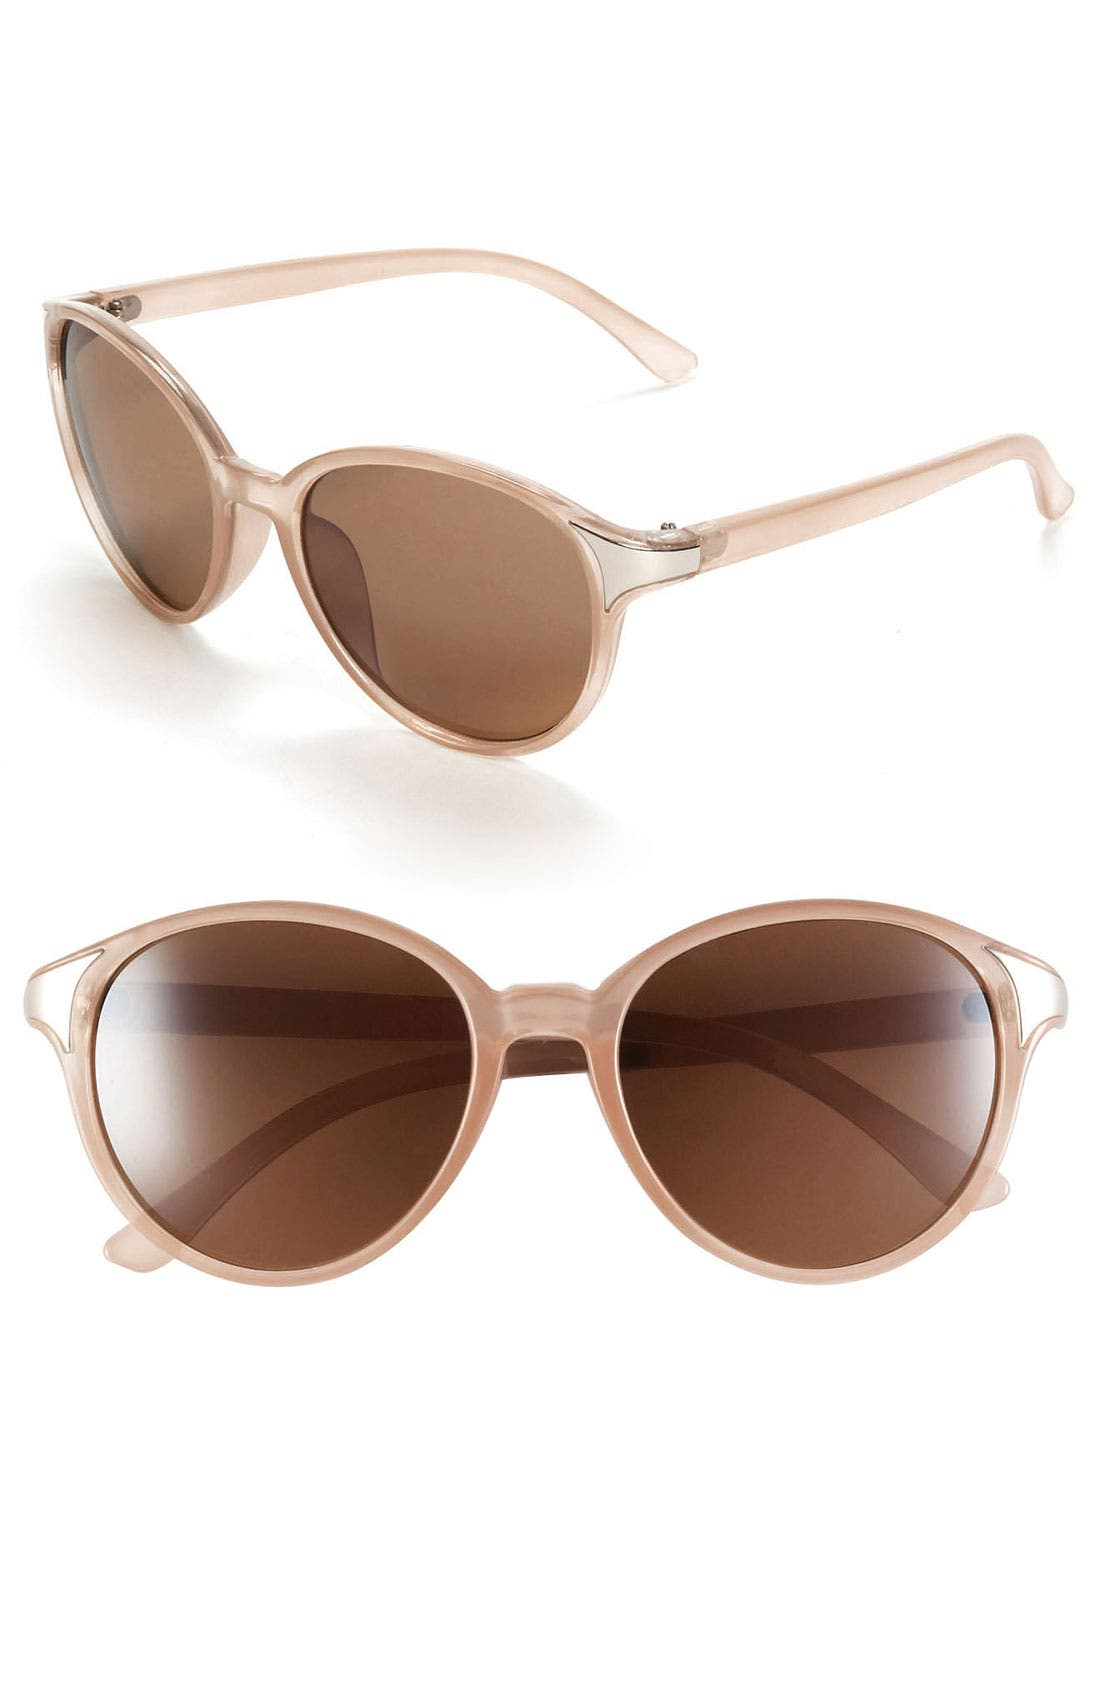 Main Image - FE NY 'High Life' Sunglasses